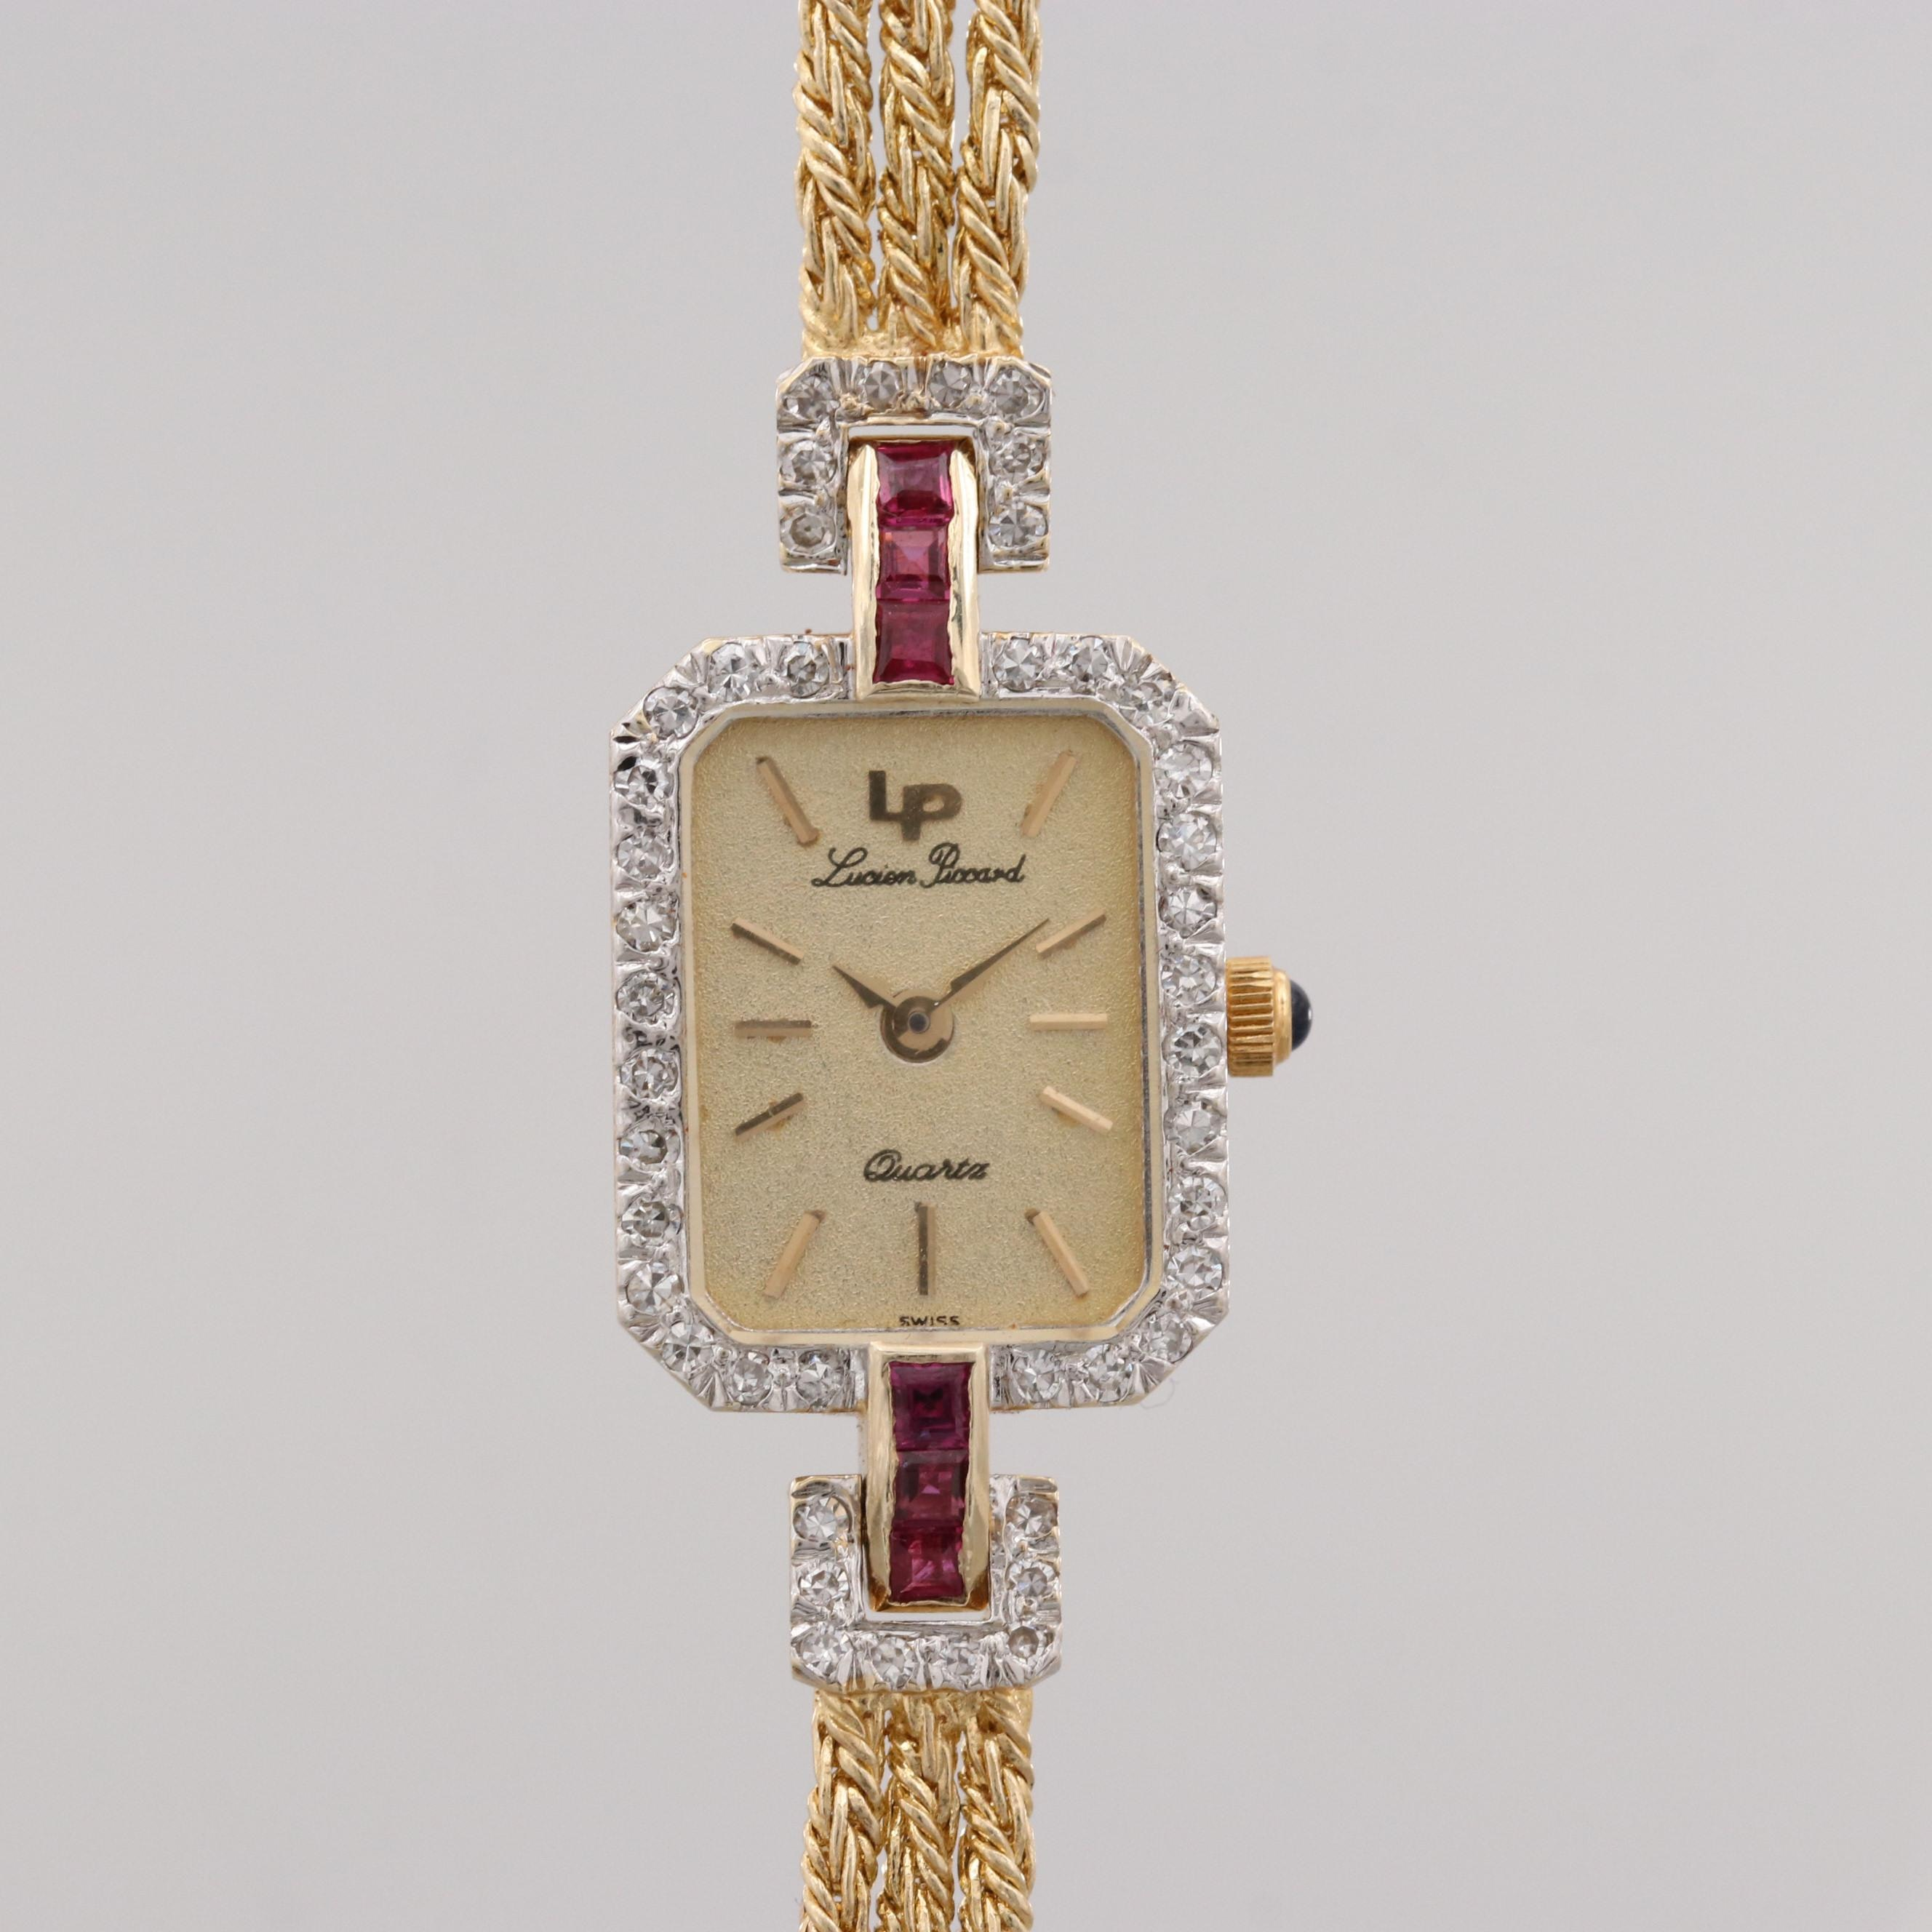 Lucien Piccard 14K Yellow Gold Diamond and Ruby Wristwatch